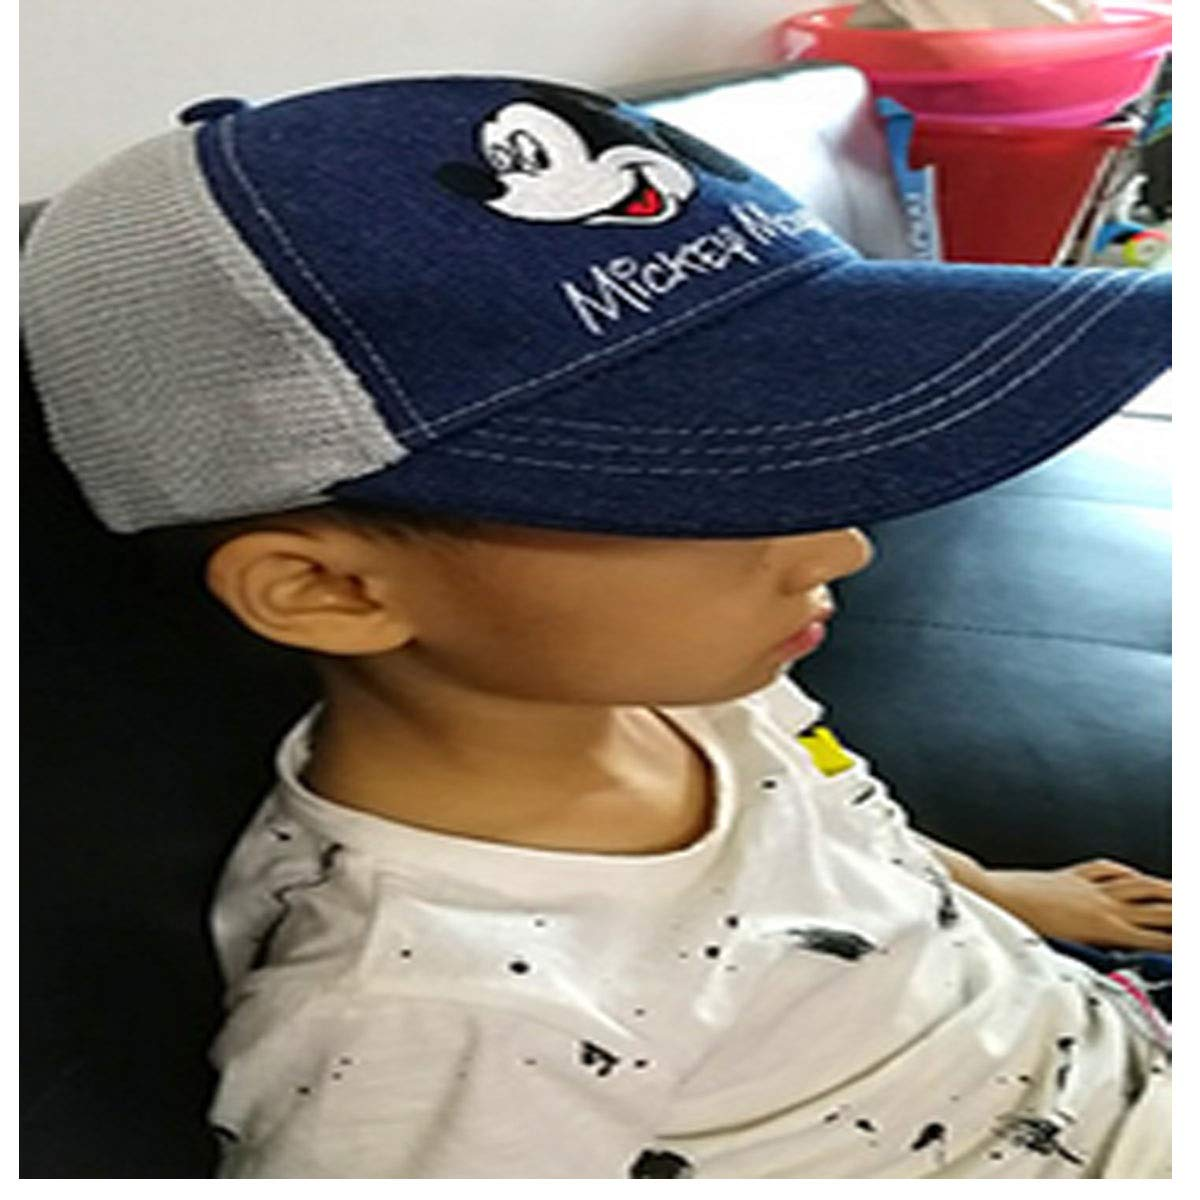 21.2-21.6 6-10 Inches Blue//Khaki//Cap Circumference 50-52CM 3-5 20.0-20.8 Years Old Inches Kehuitong Hat Childrens Sun Hat Outdoor Sports Cap Years Old 53-54CM